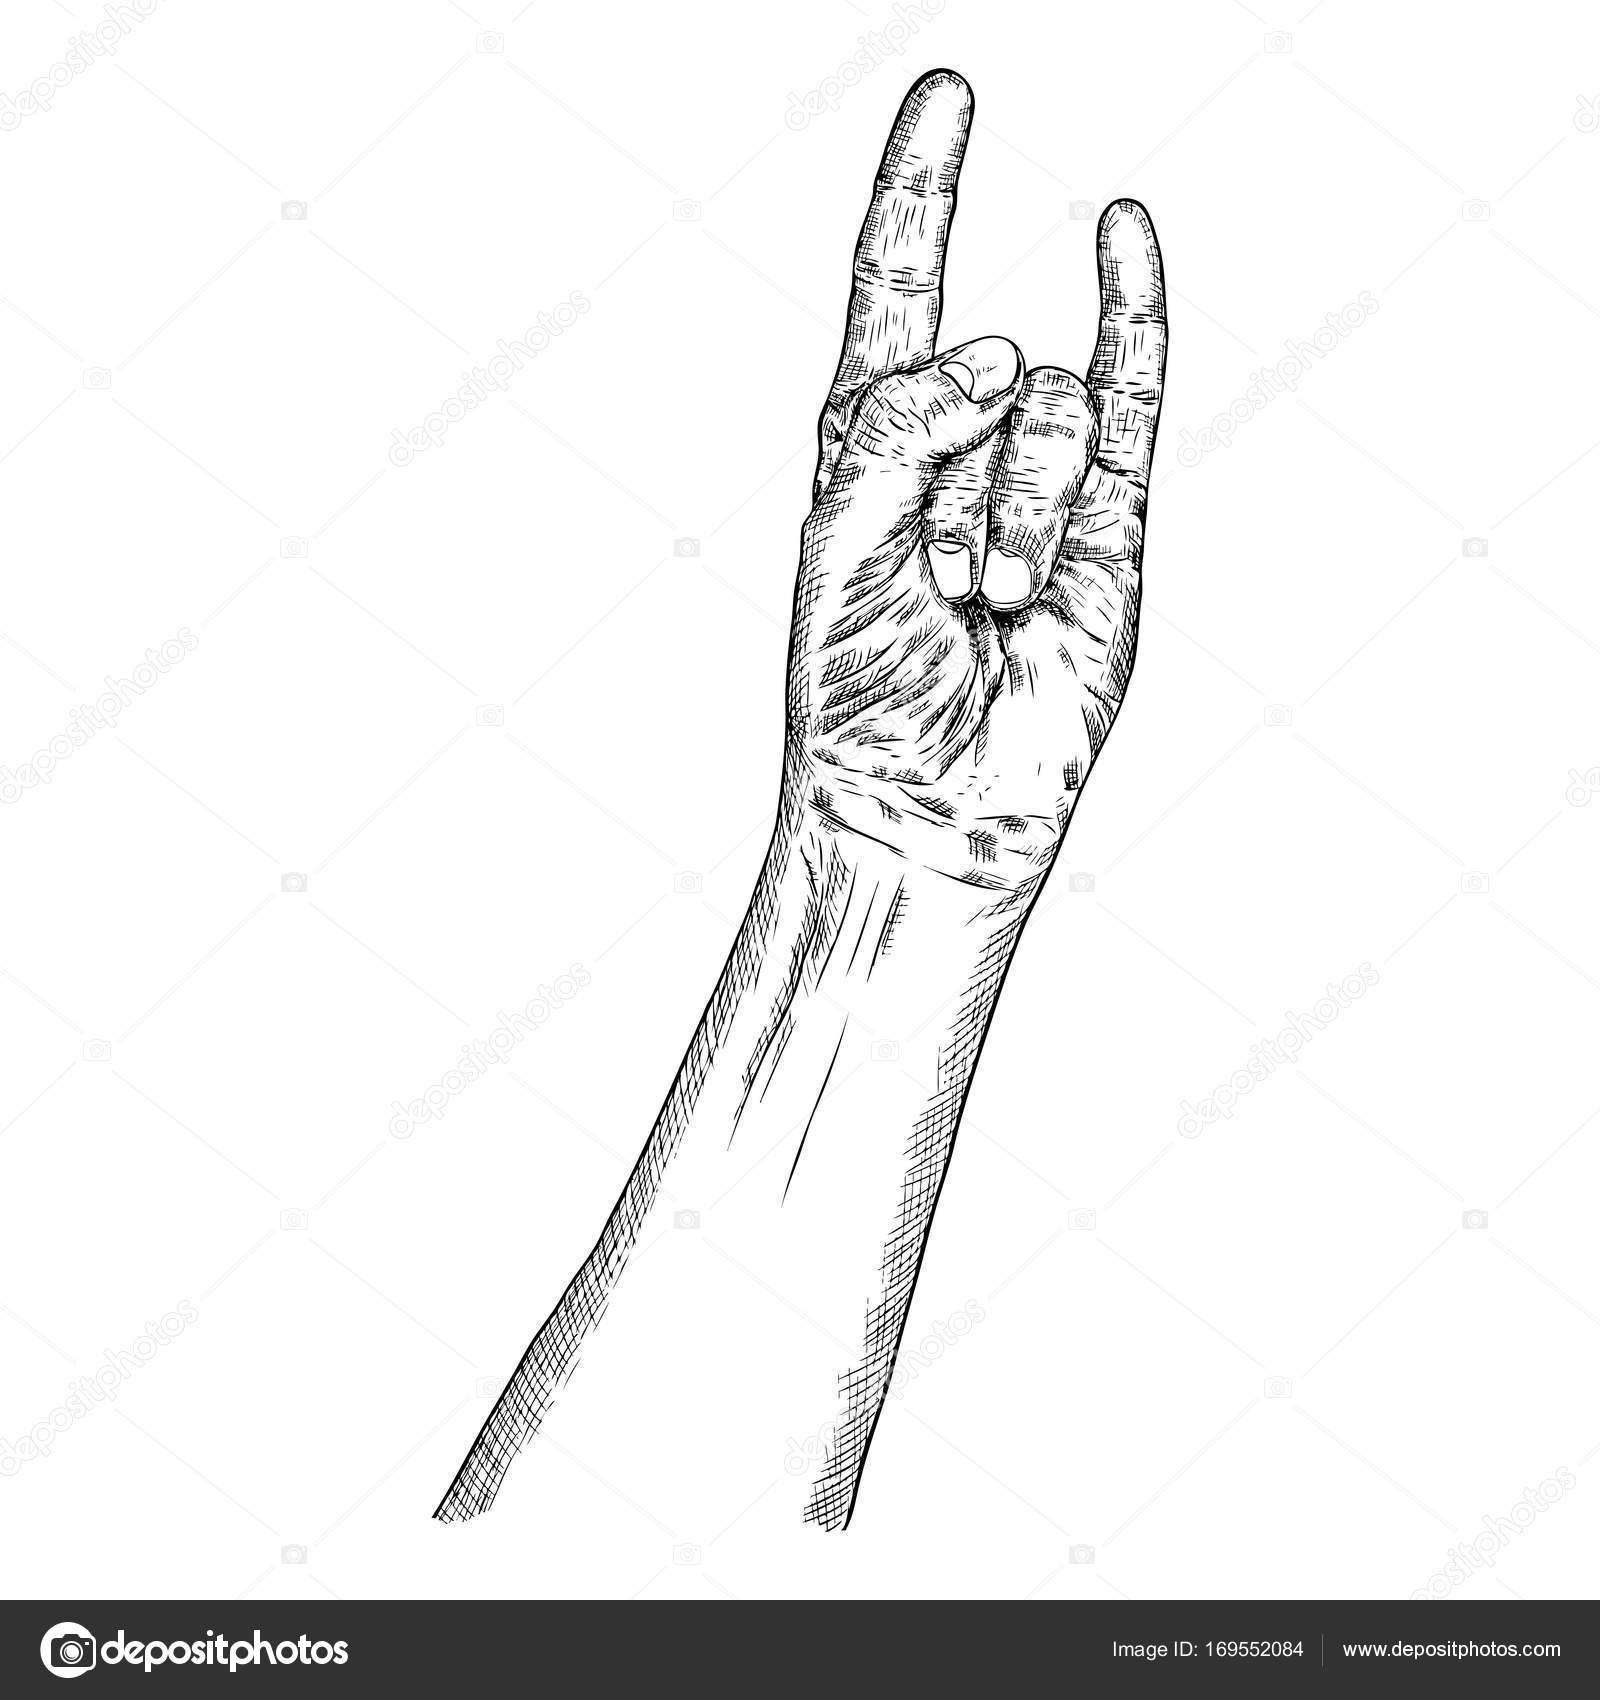 Hand fist raised up symbol stock vector goldenshrimp 169552084 rock and roll hand sign hand drawn man style fist demon symbol male wrist evil finger gesture manly hand showing satan sign boy forearm music sketch biocorpaavc Choice Image